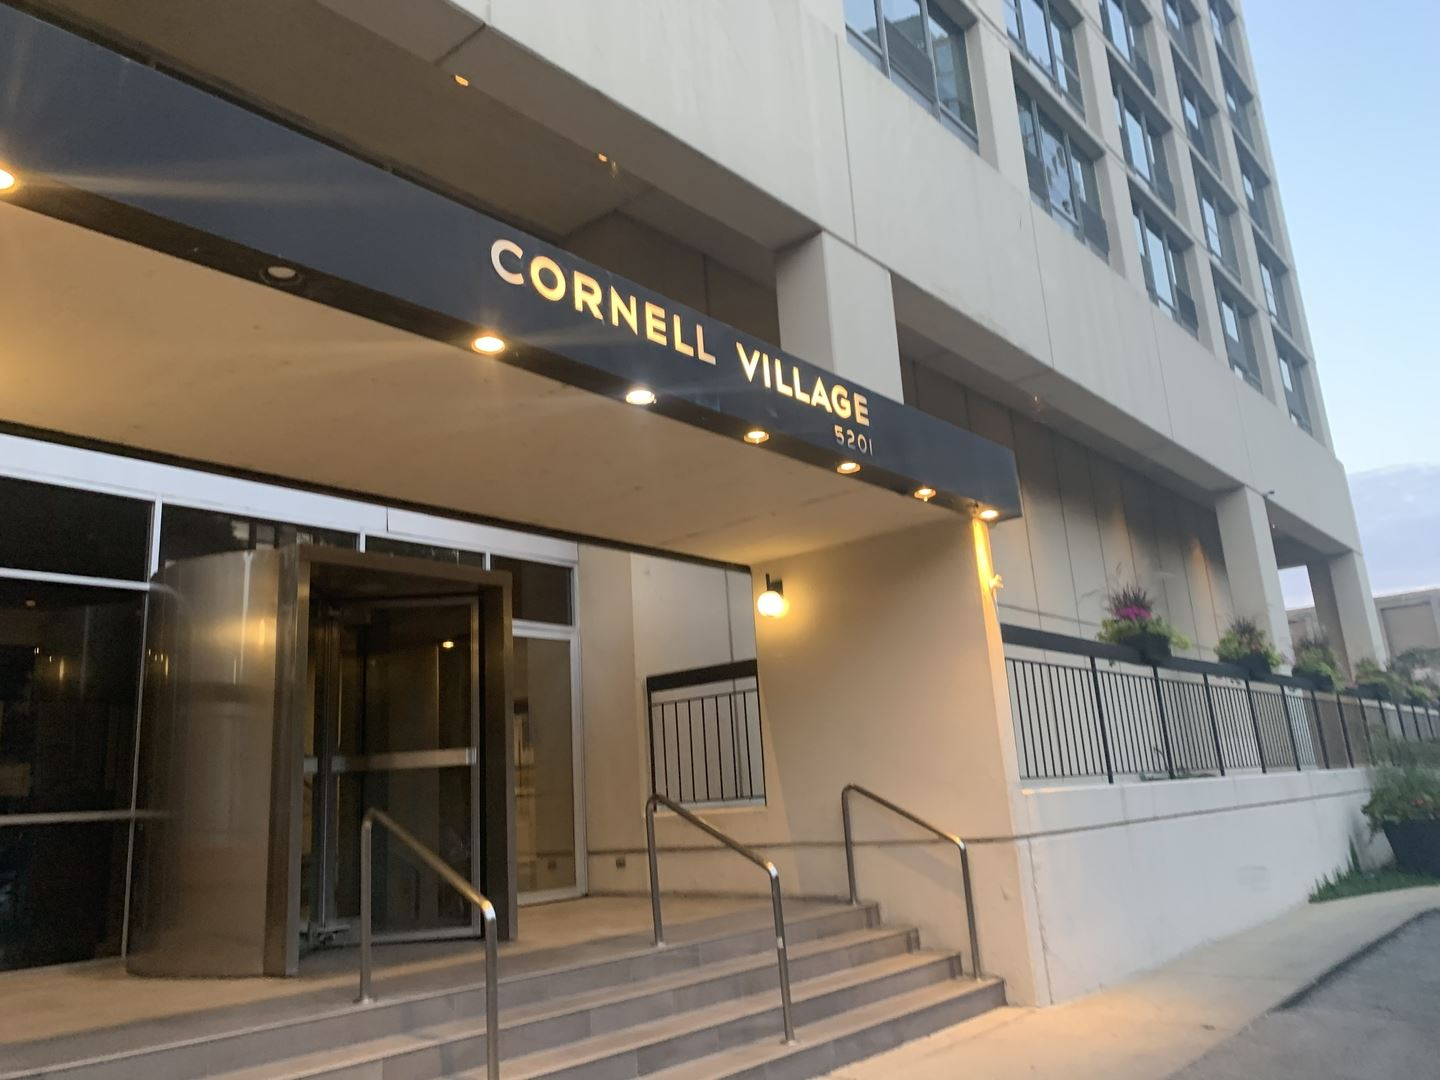 5201 S CORNELL Avenue #5F, Chicago, IL 60615 - #: 10608321